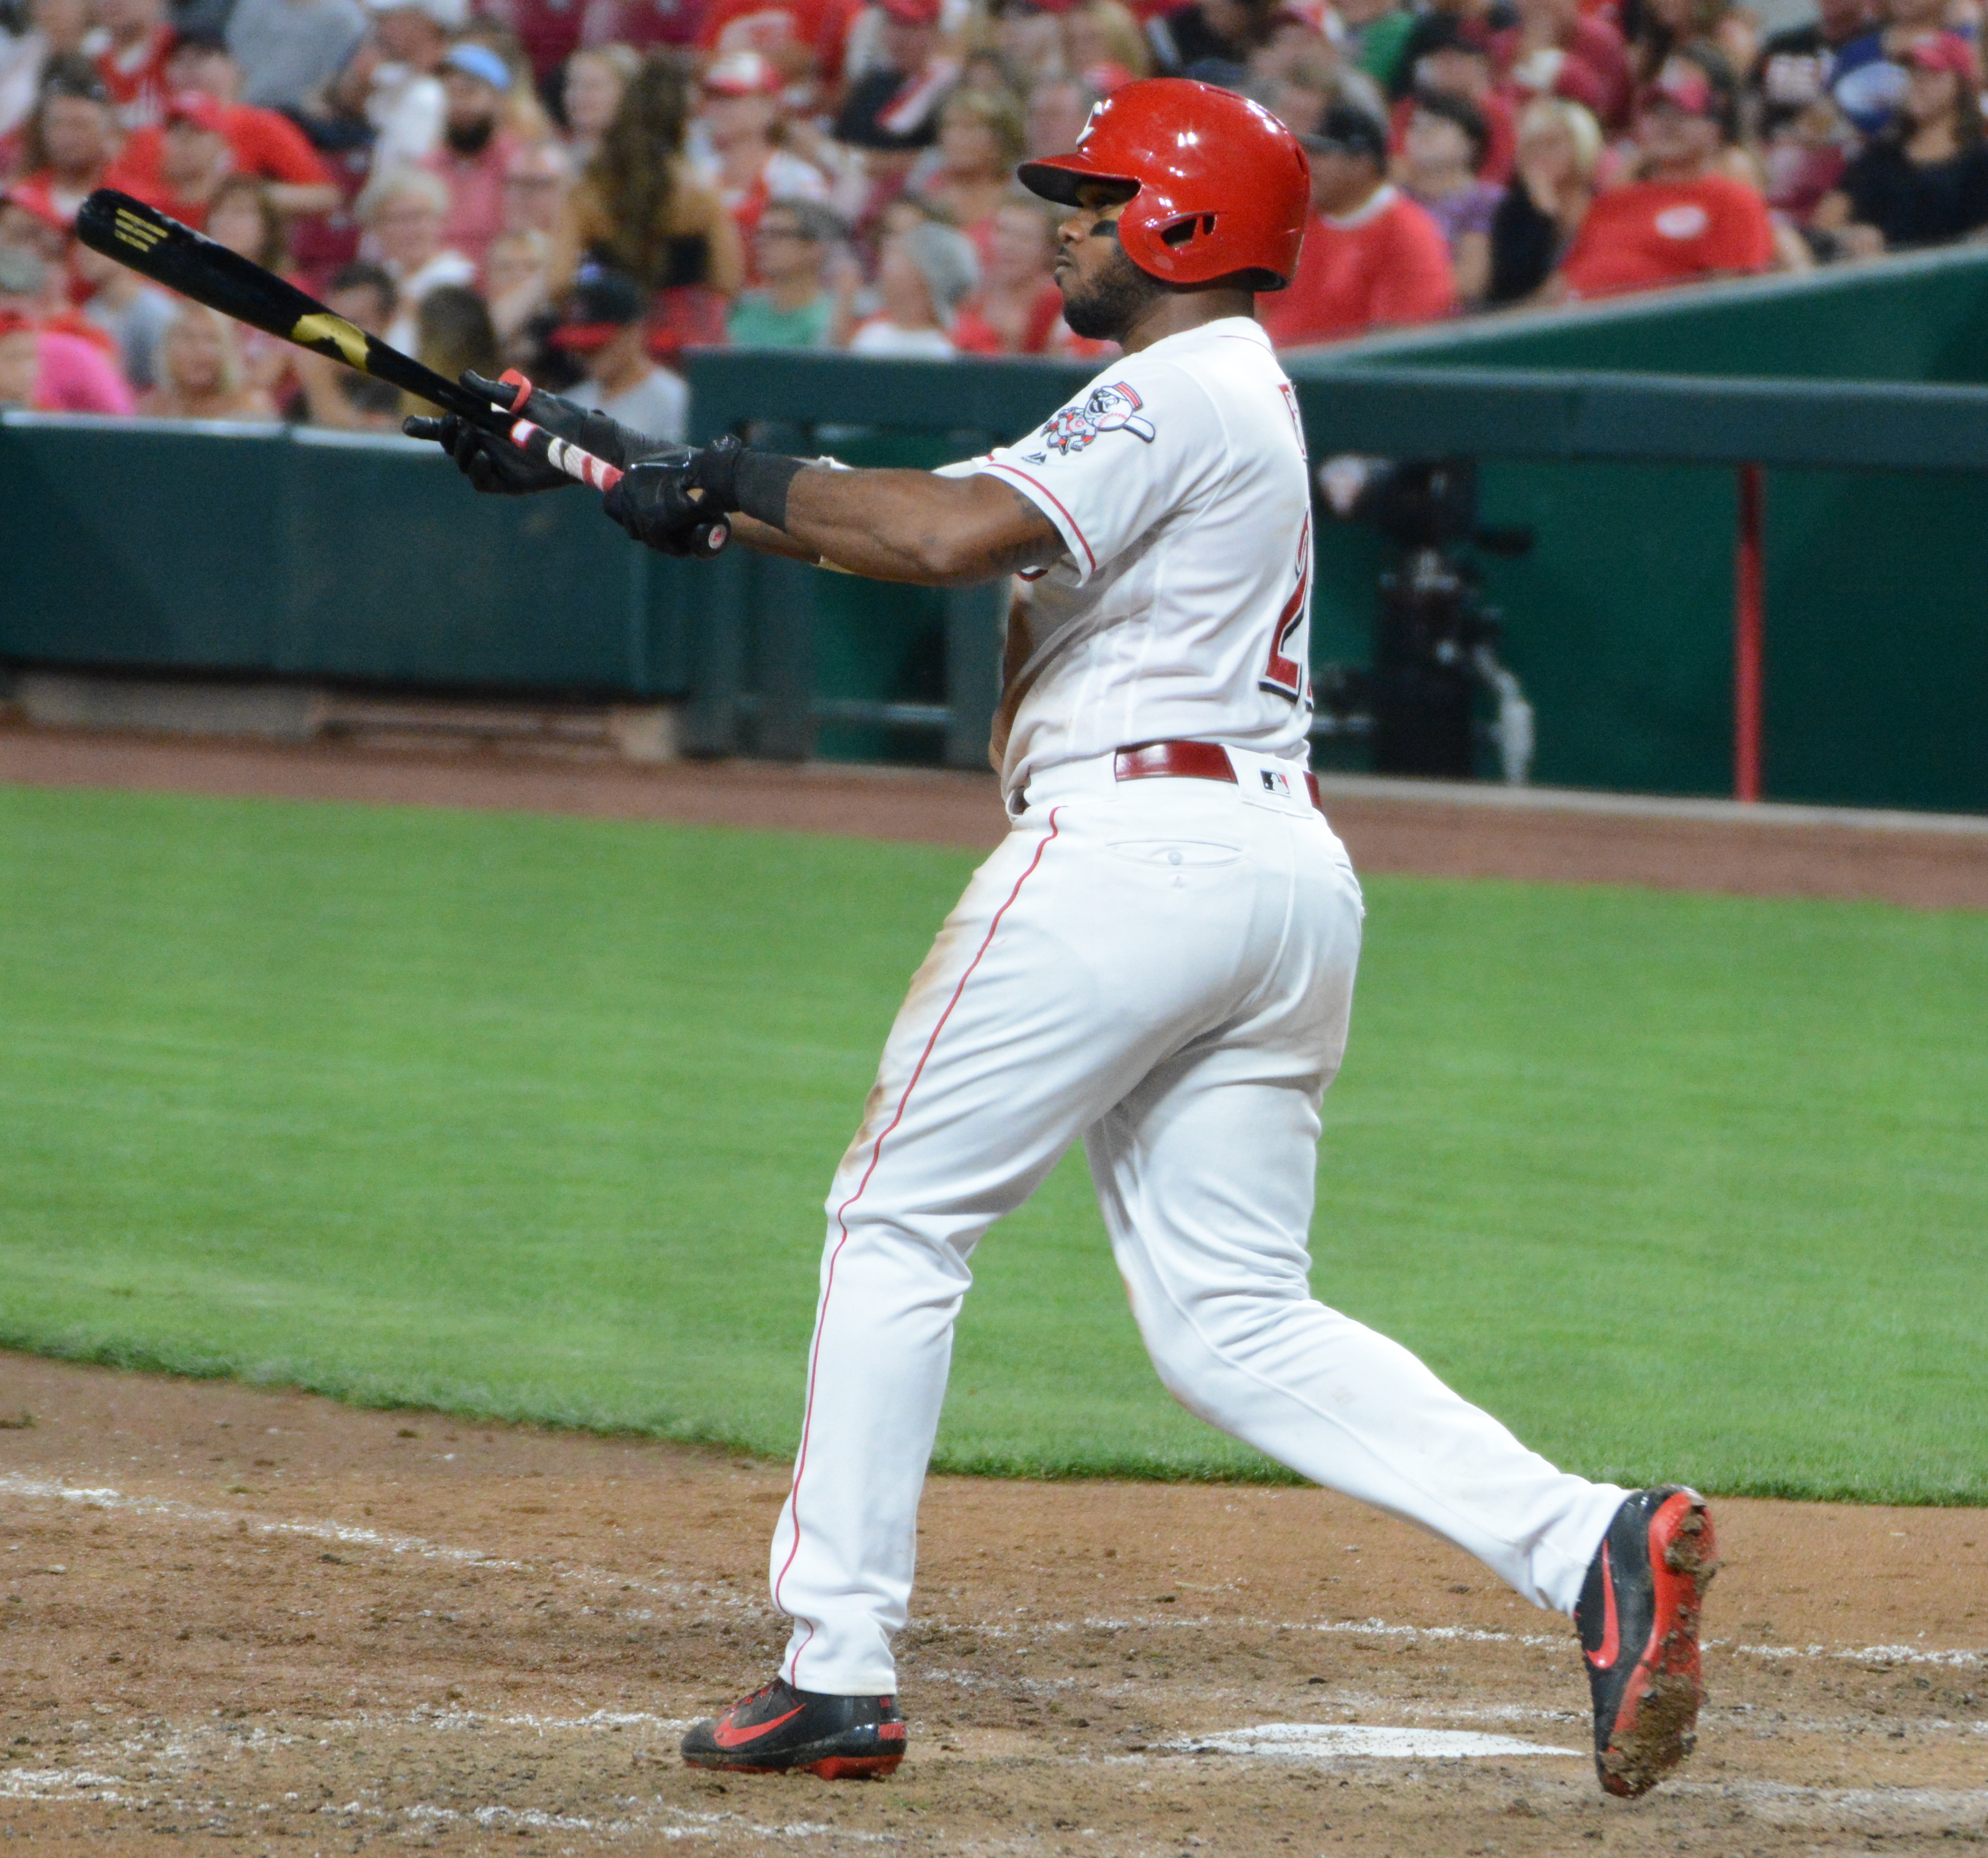 August 15, 2019 -- The Reds beat the Cardinals at home, 2 to 1. The Reds top hitter was Phillip Ervin and starting pitcher was Sonny Gray.